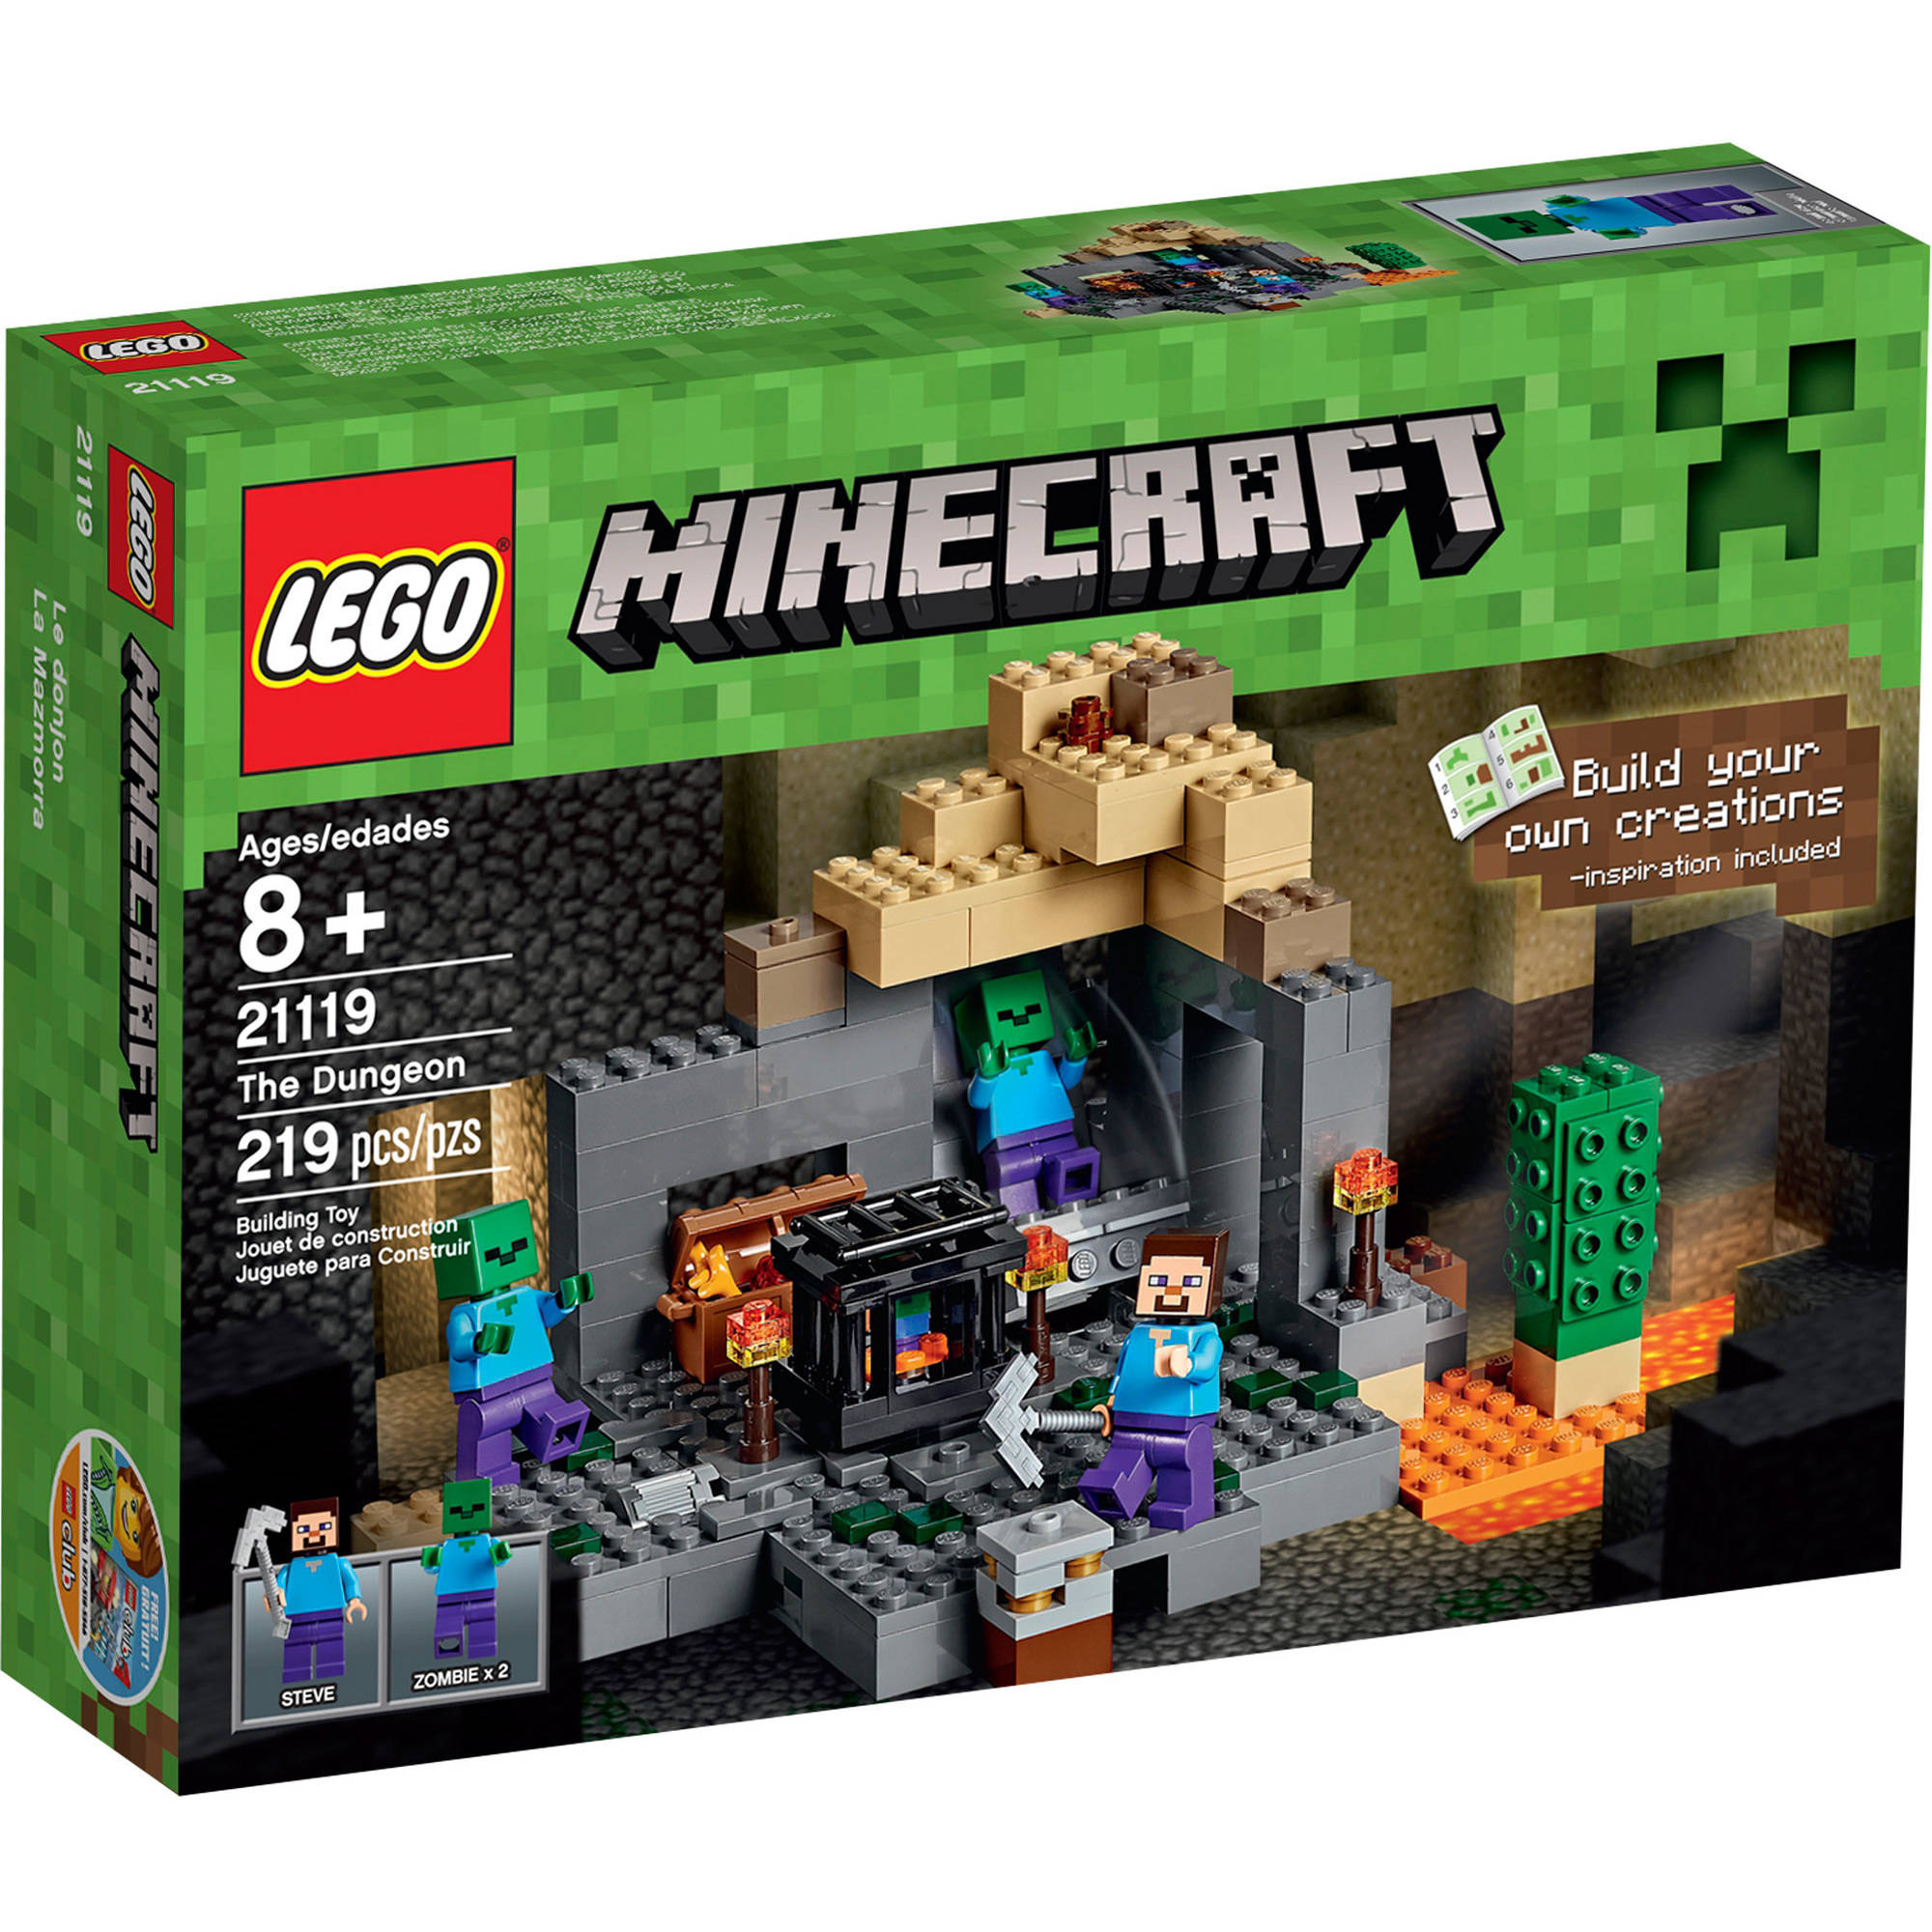 Lego Minecraft The Dungeon, 21119 by LEGO Systems, Inc.